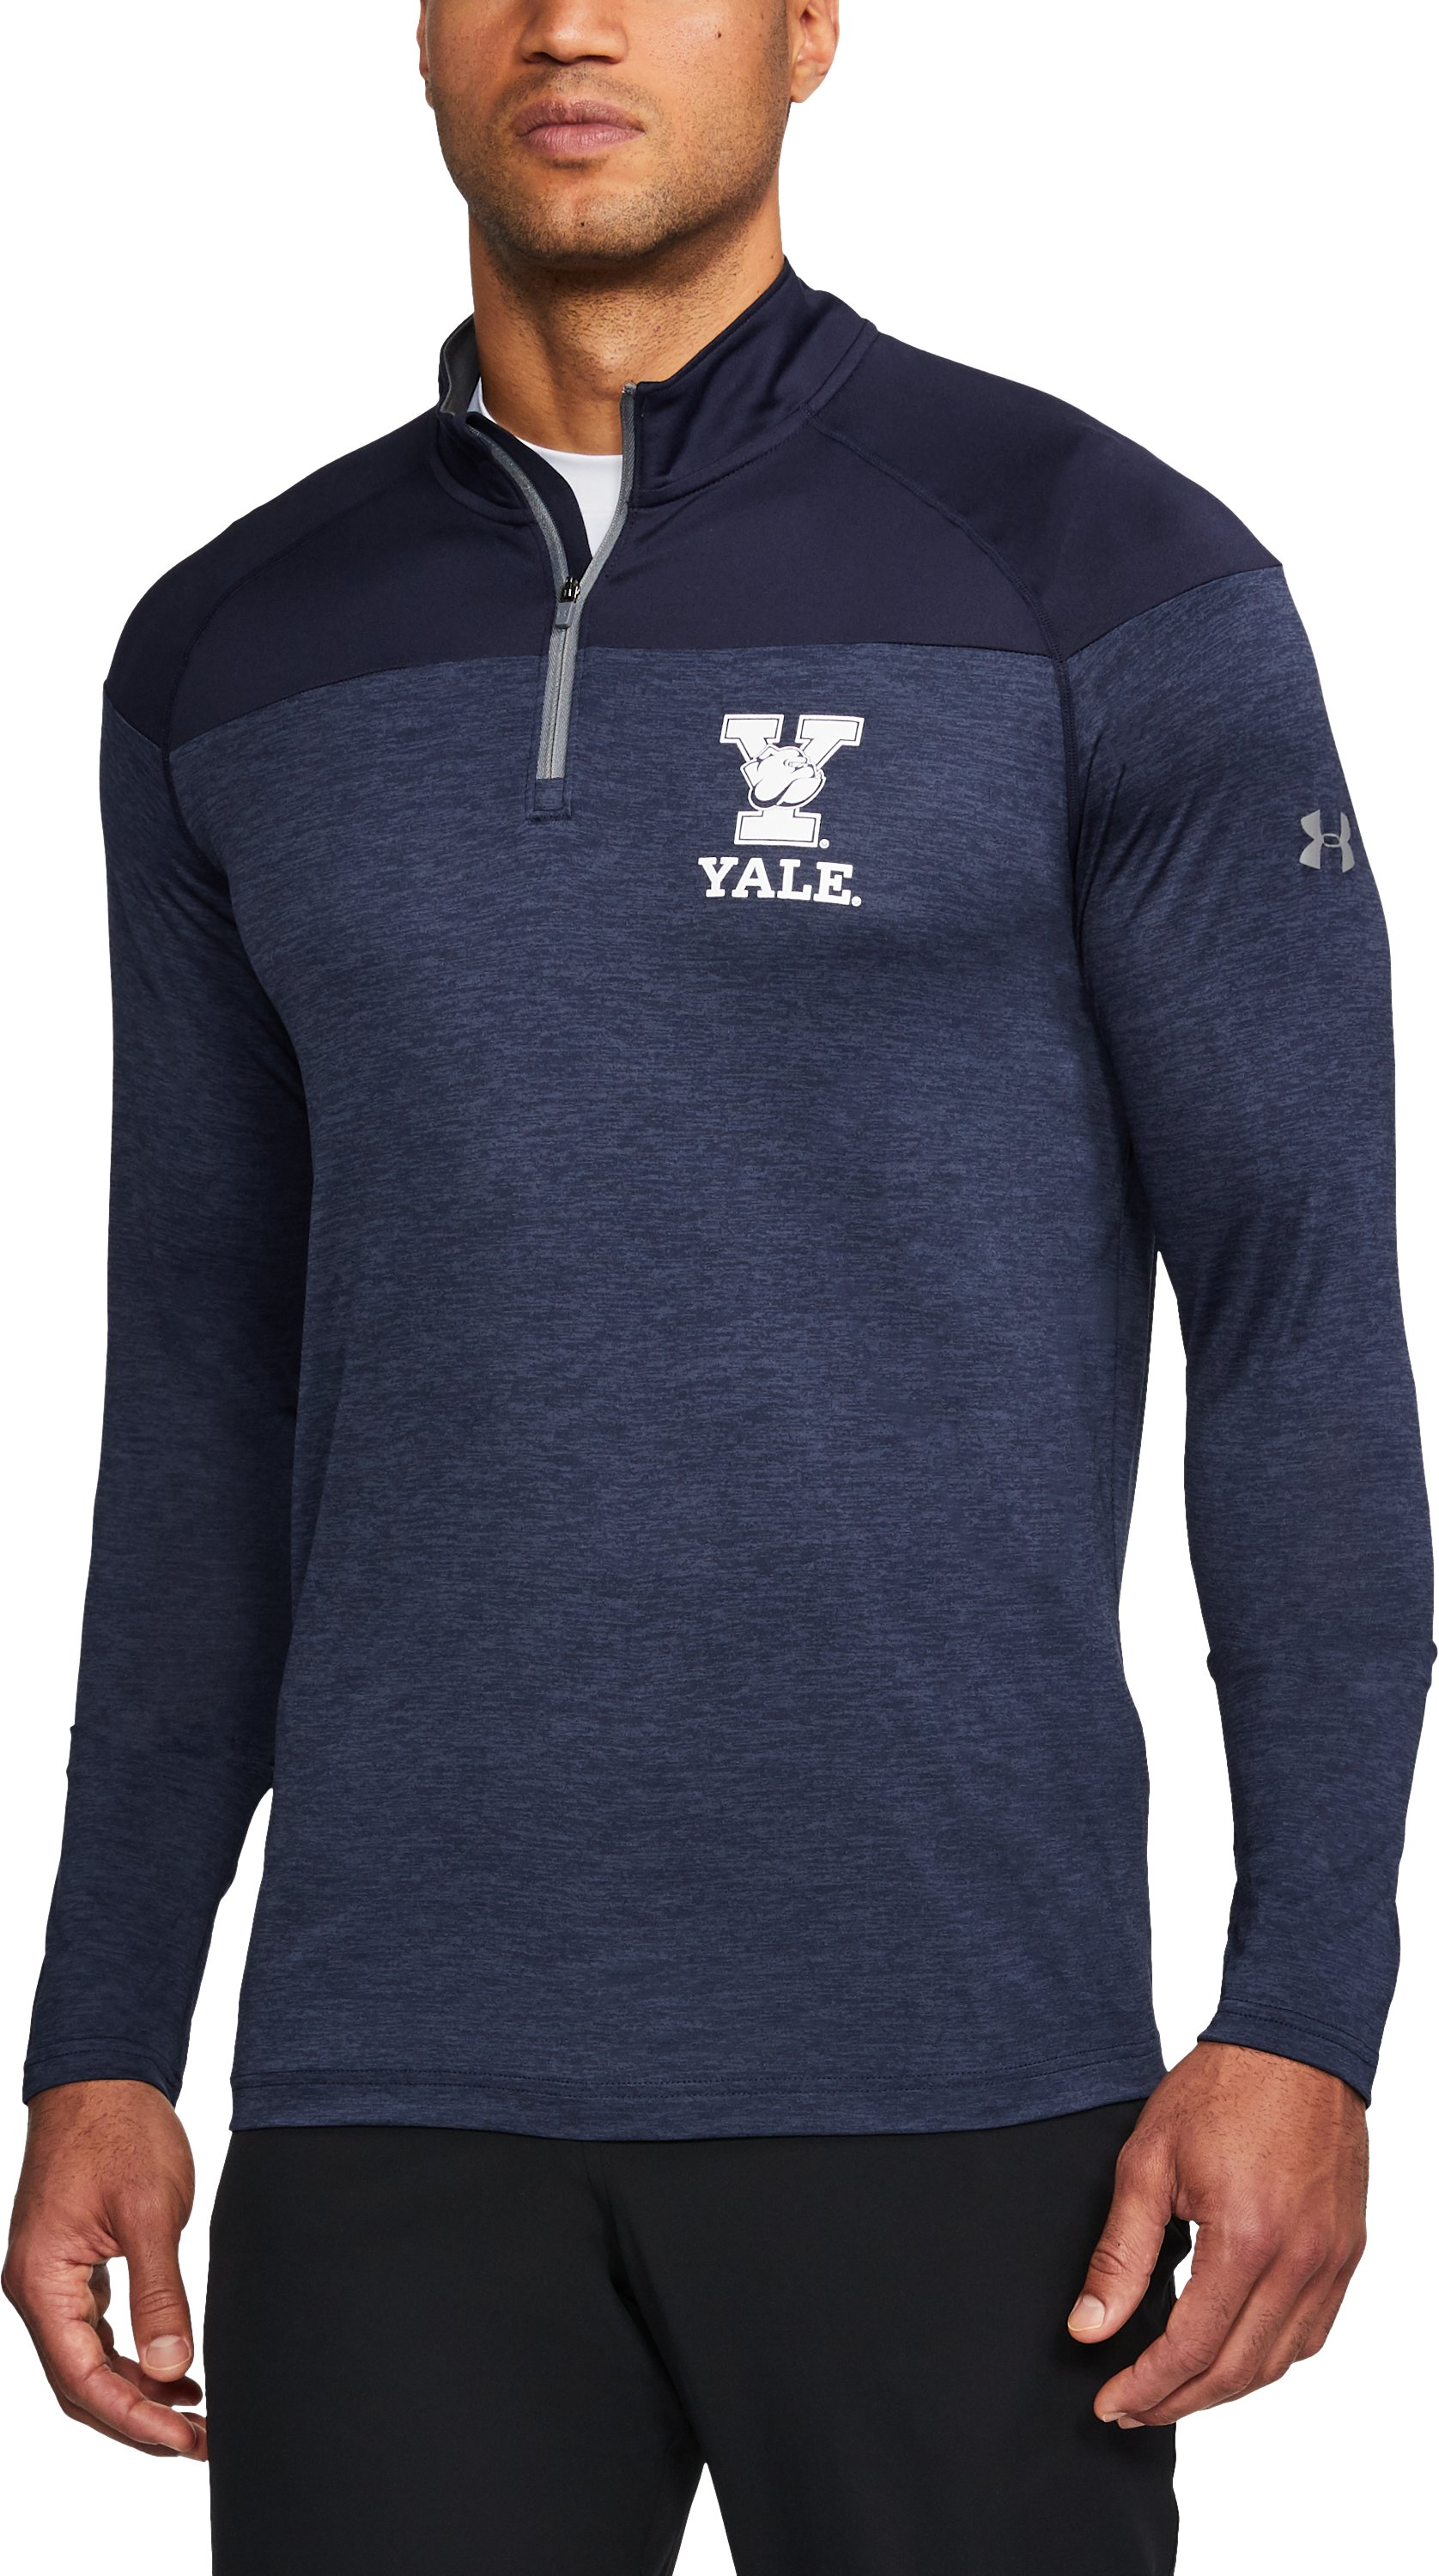 Men's Yale Printed ¼ Zip, Midnight Navy,